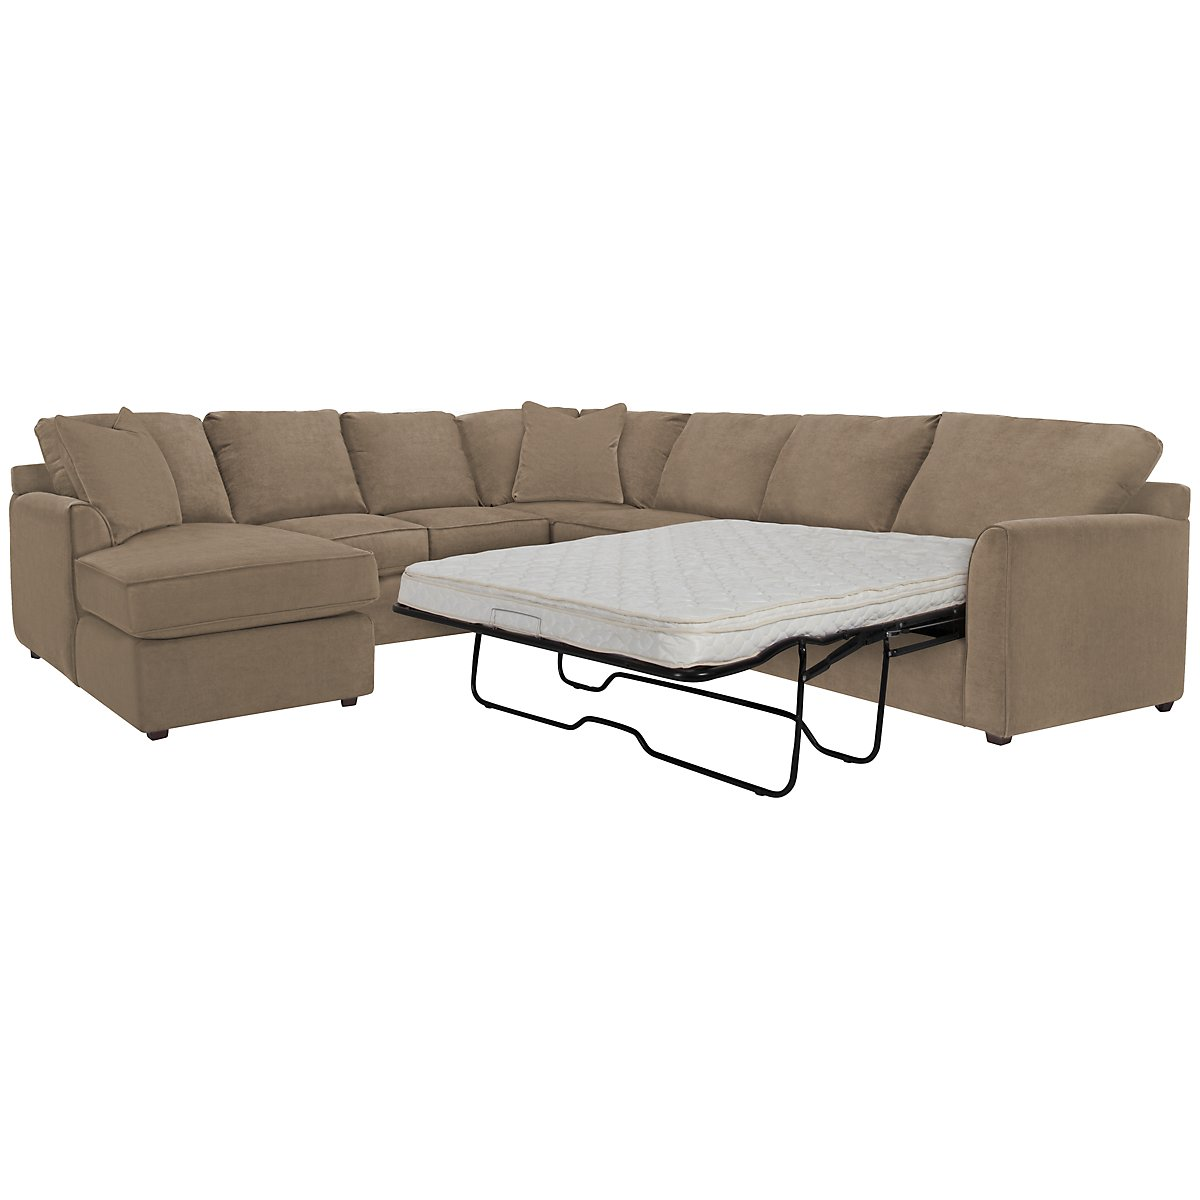 Express3 Light Brown Microfiber Left Chaise Innerspring Sleeper Sectional